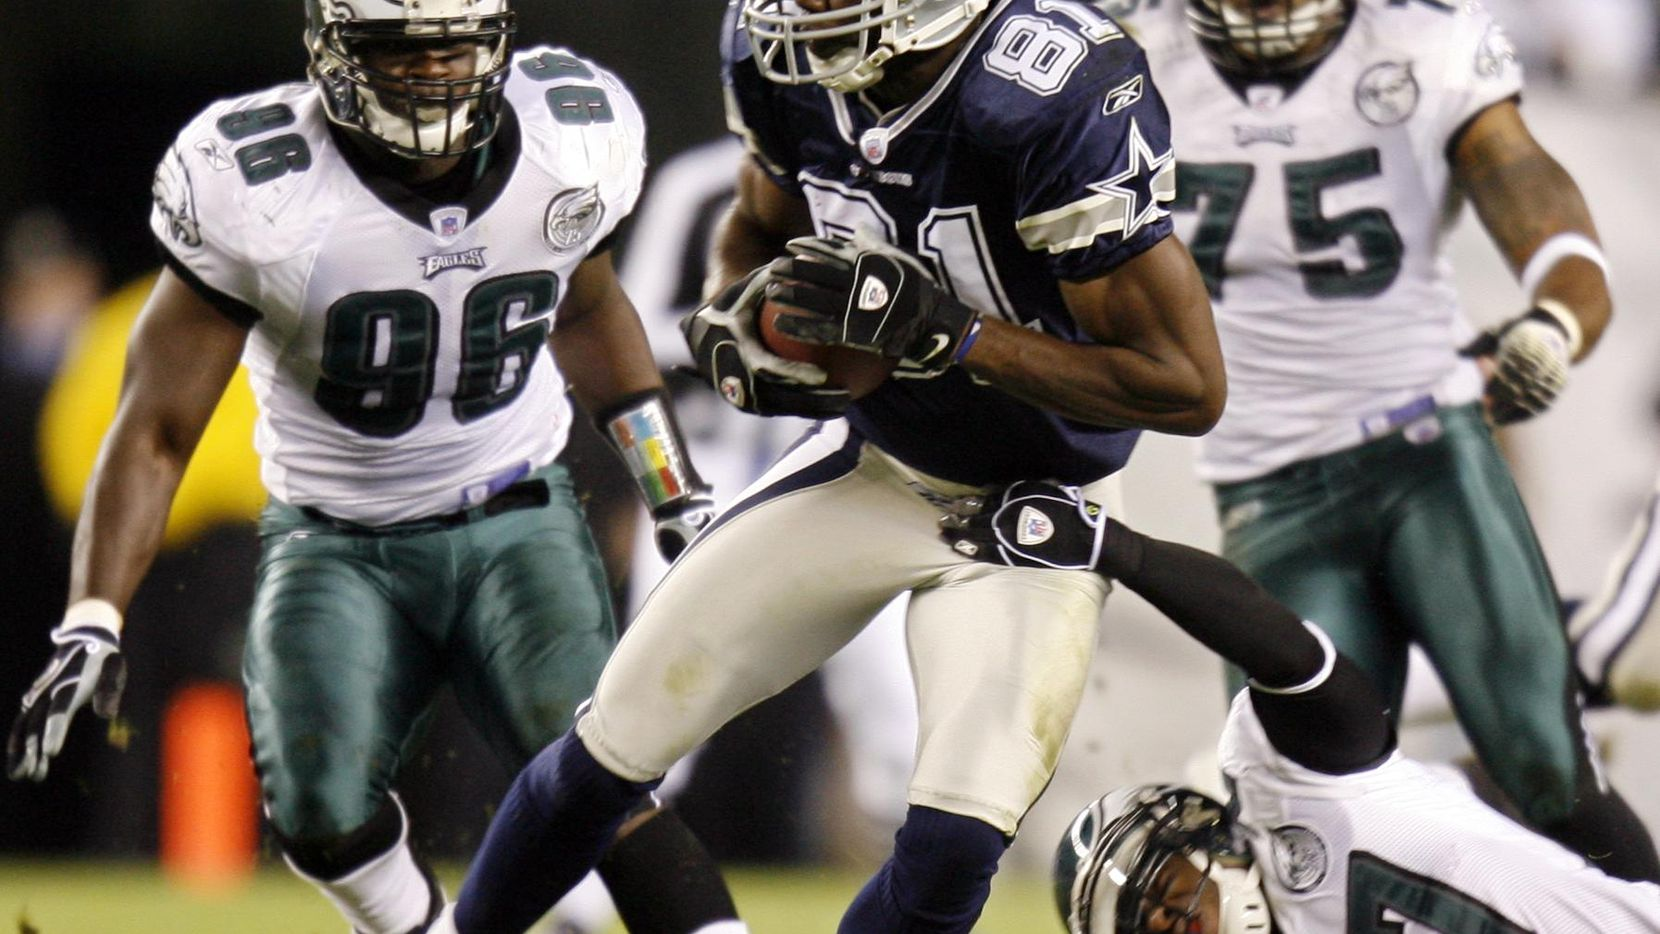 Terrell Owens, Nov. 4, 2007: Owens, shunned by Philadelphia when with the Eagles, took it out on them as a Cowboy. Owens had 10 catches for 174 yards in a 38-17 rout at Lincoln Financial Field. Owens also scored a 45-yard touchdown and enjoyed the crowd reaction to his success.